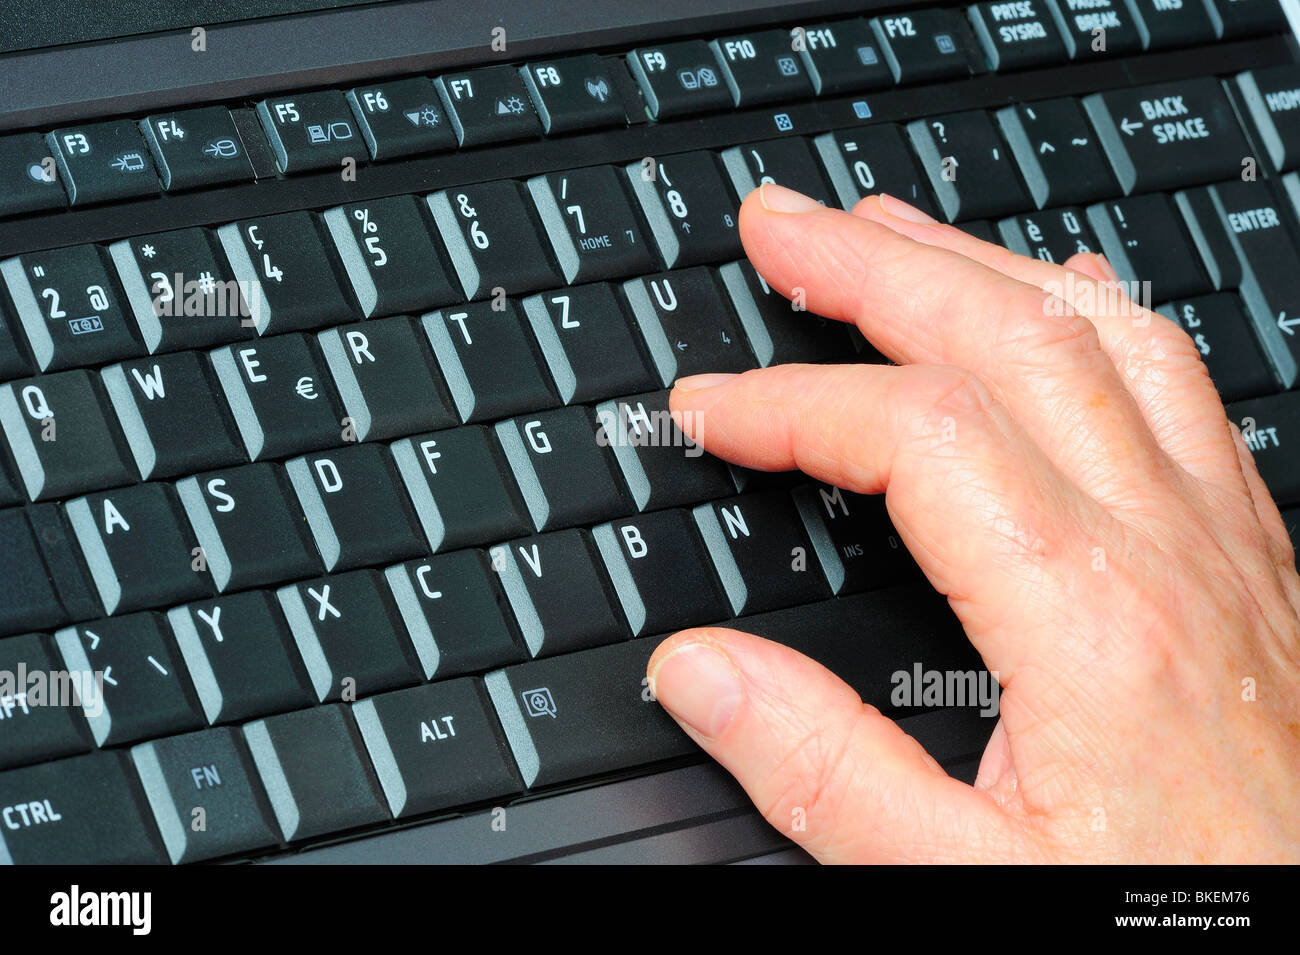 Close up view of a person using a french computer keyboard qwertz close up view of a person using a french computer keyboard qwertz with accented letters and other differences from the english spiritdancerdesigns Images